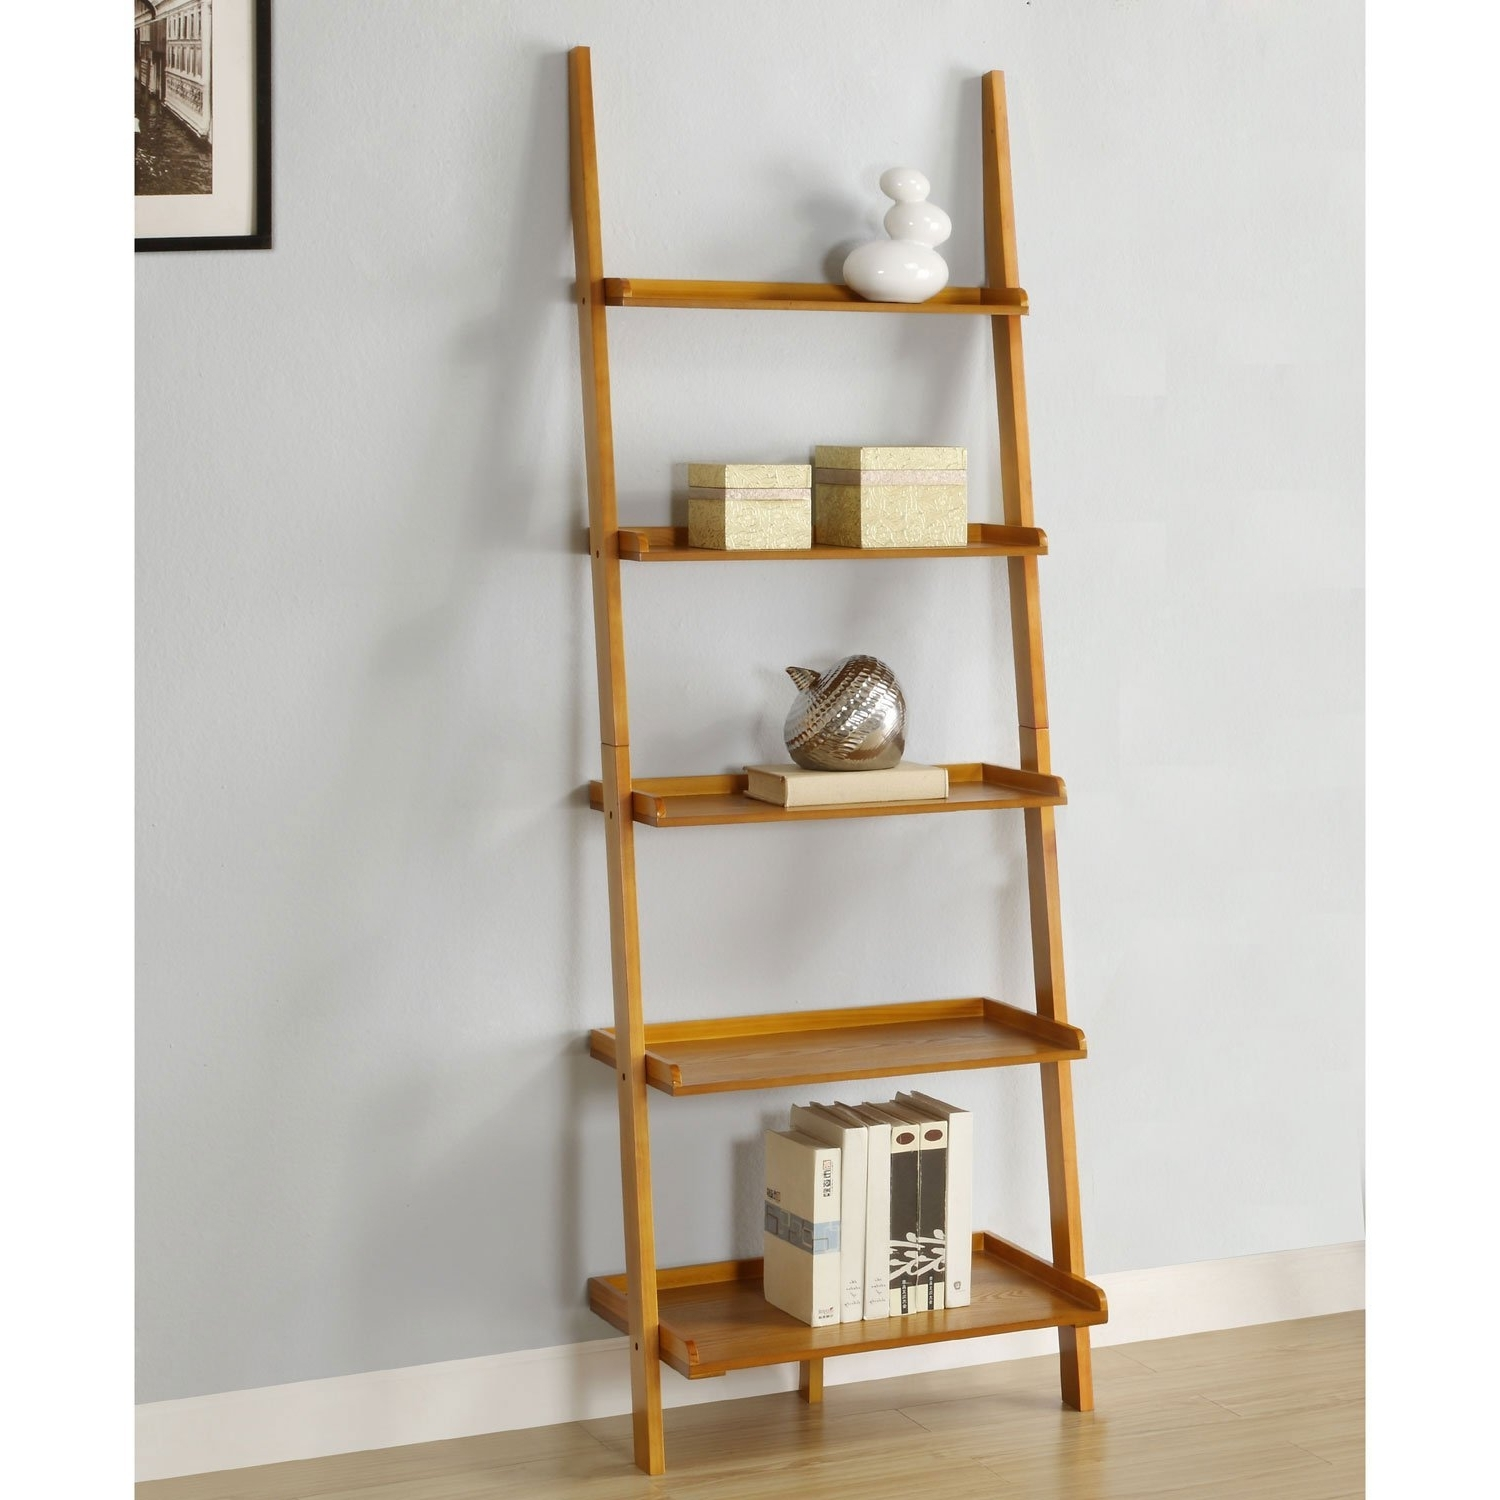 Latest Leaning Ladder Bookcases Throughout Amazon: Athomemart Leaning Ladder Bookshelf In Oak Finish (View 7 of 15)